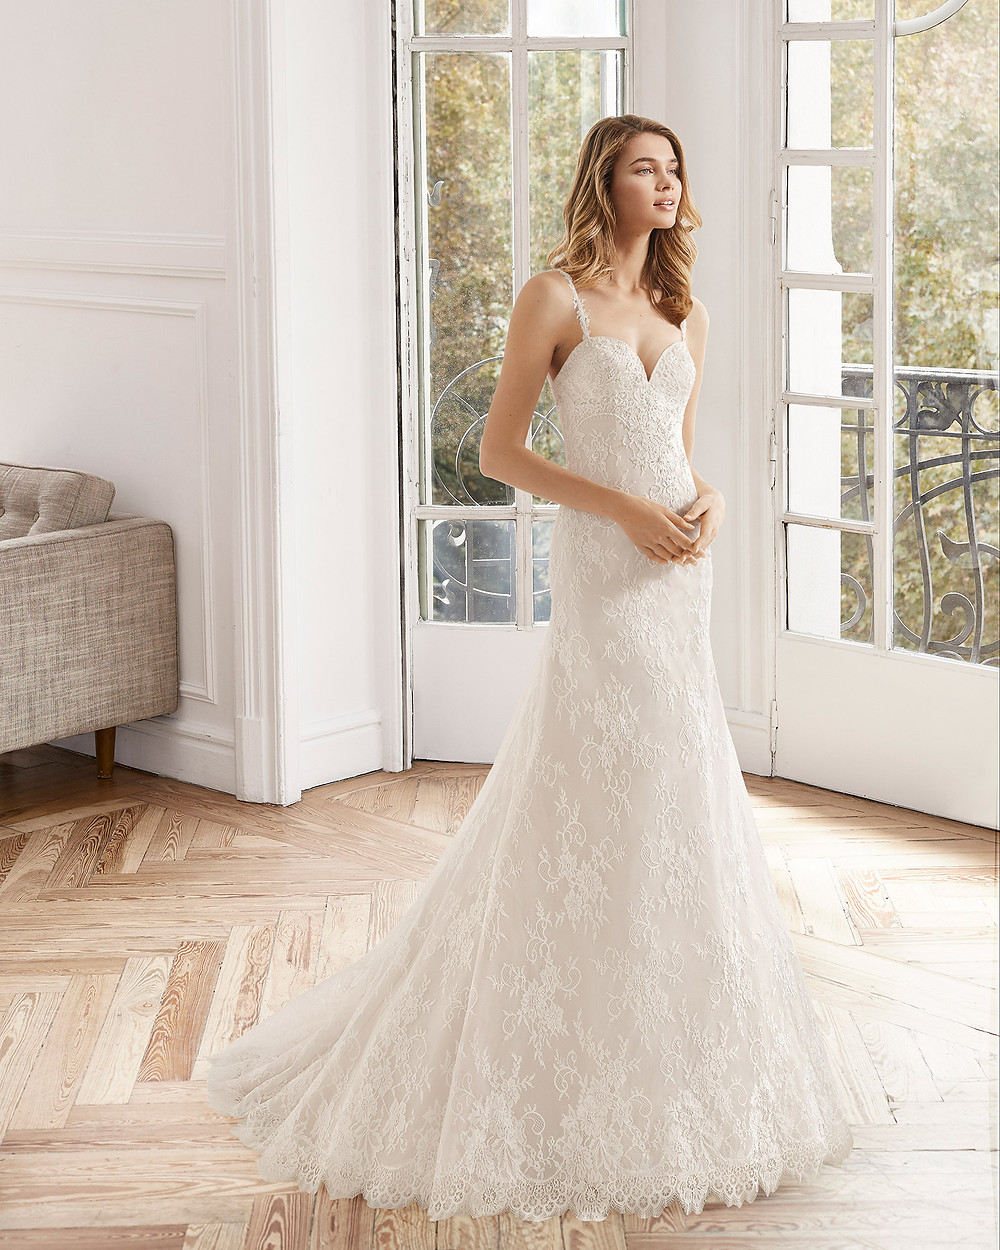 An Aire Barcelona 2020 lace mermaid wedding dress with a sweetheart neckline and straps